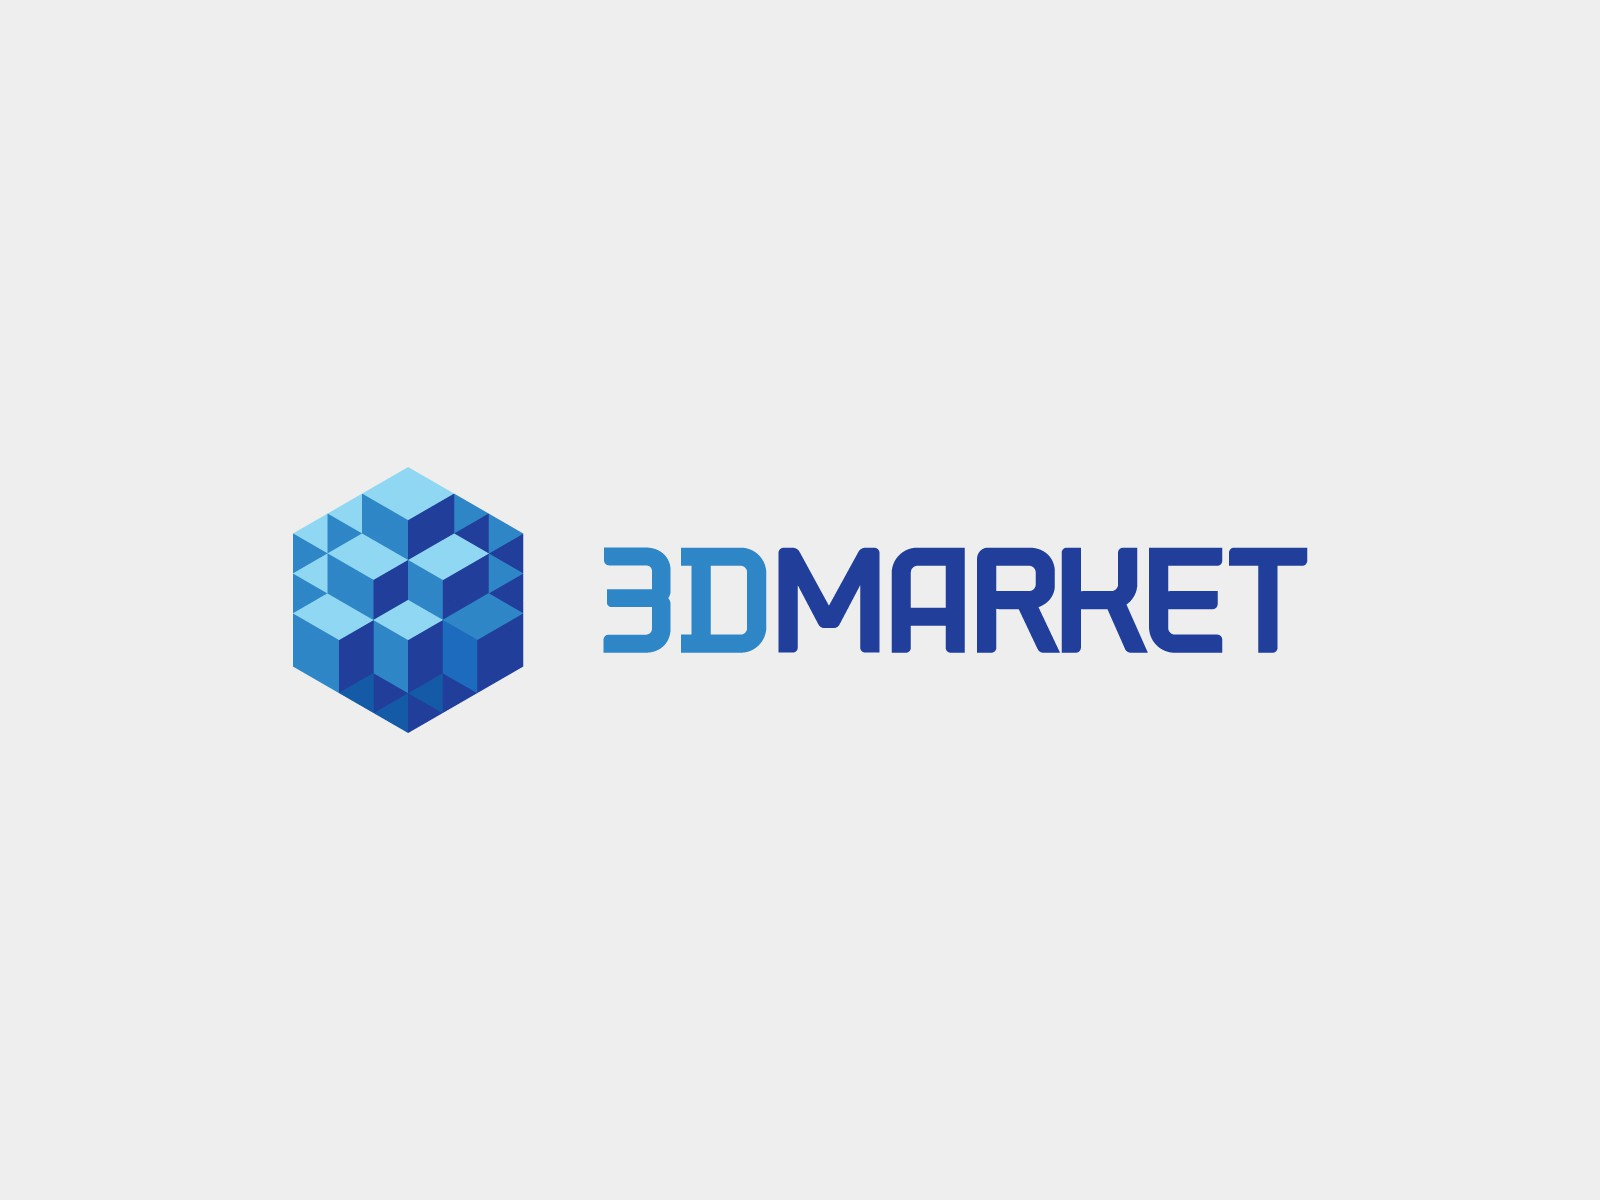 Create an AWESOME logo for a 3D printing business